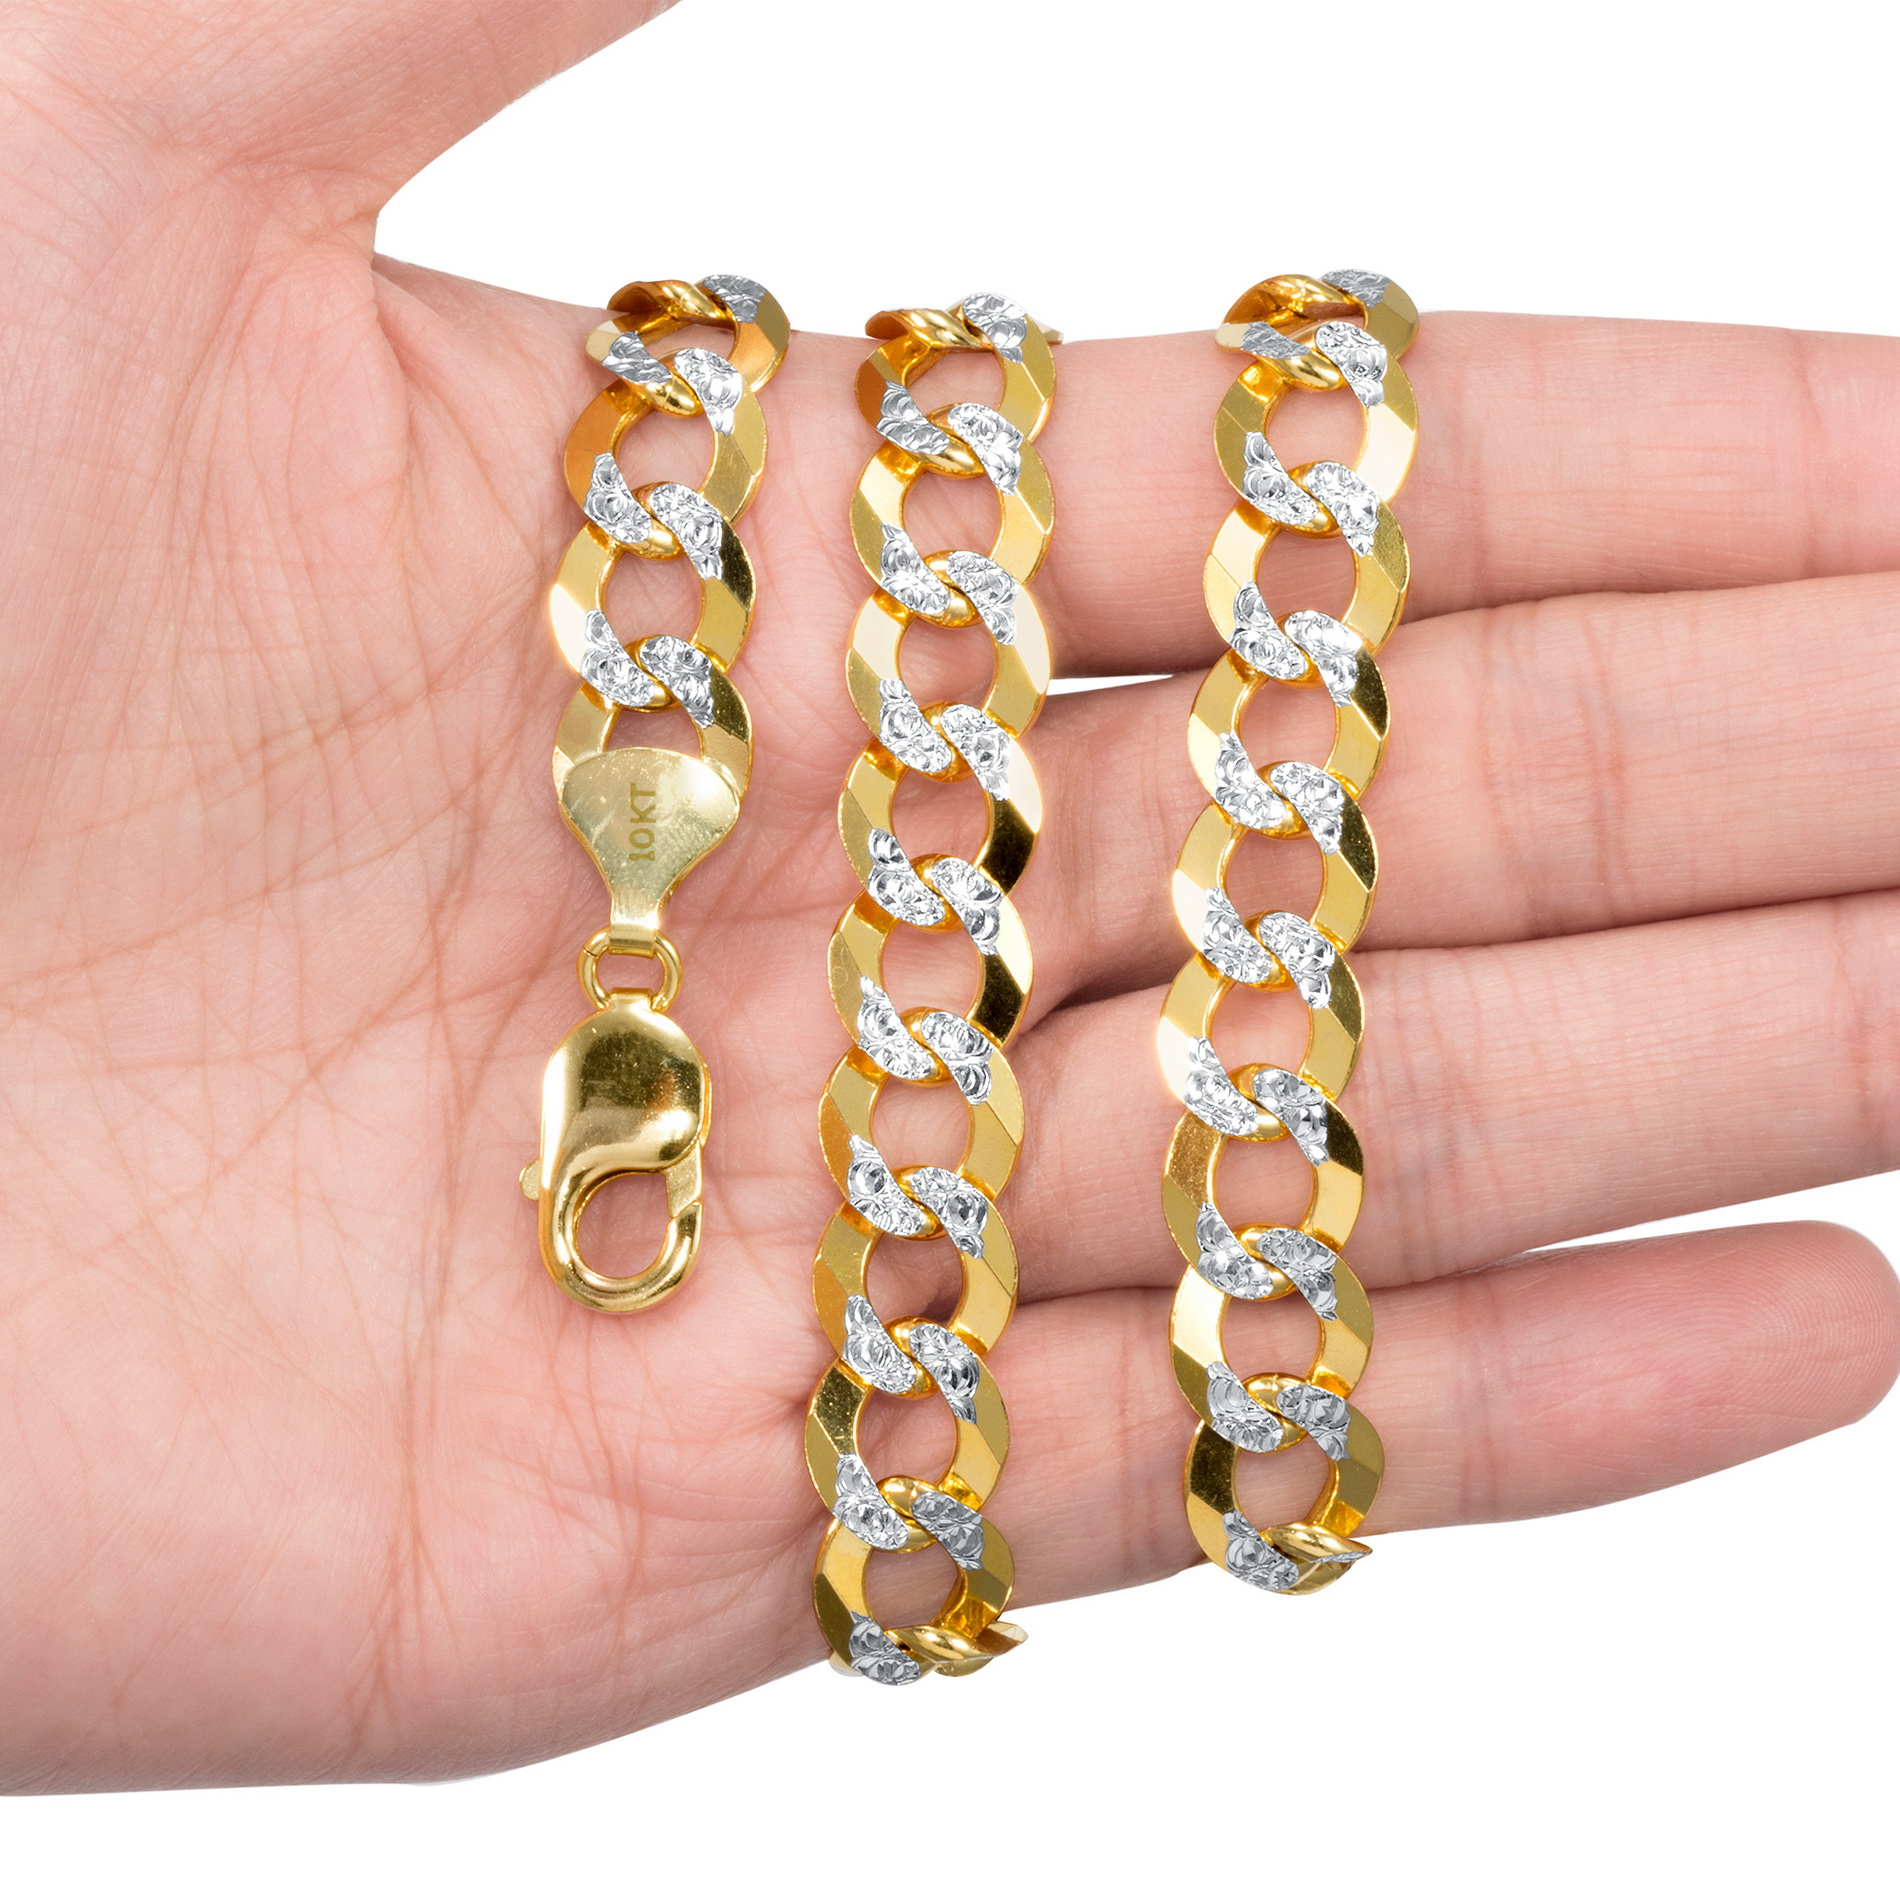 10k-Yellow-Gold-Solid-11-5mm-Diamond-Cut-Pave-Cuban-Curb-Chain-Necklace-22-034-30-034 thumbnail 11